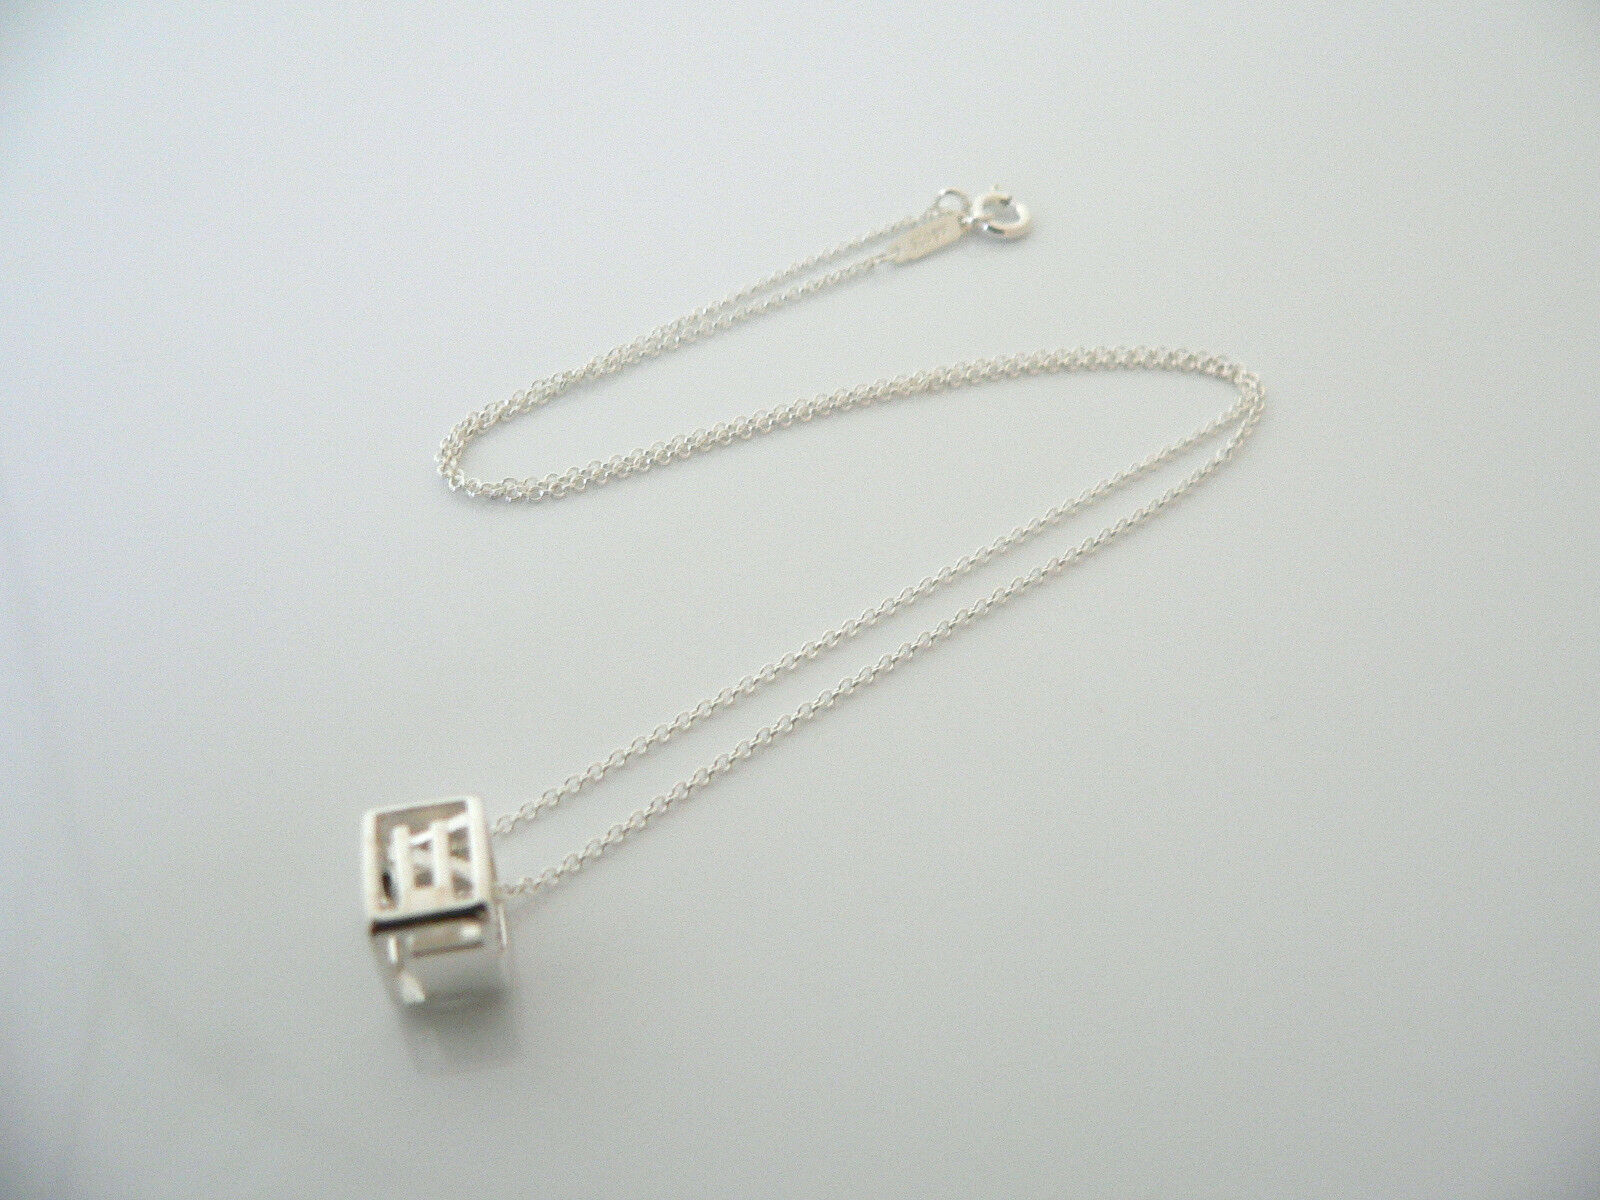 Tiffany & Co Silver LOVE Cube Necklace Pendant Charm ERA Gift